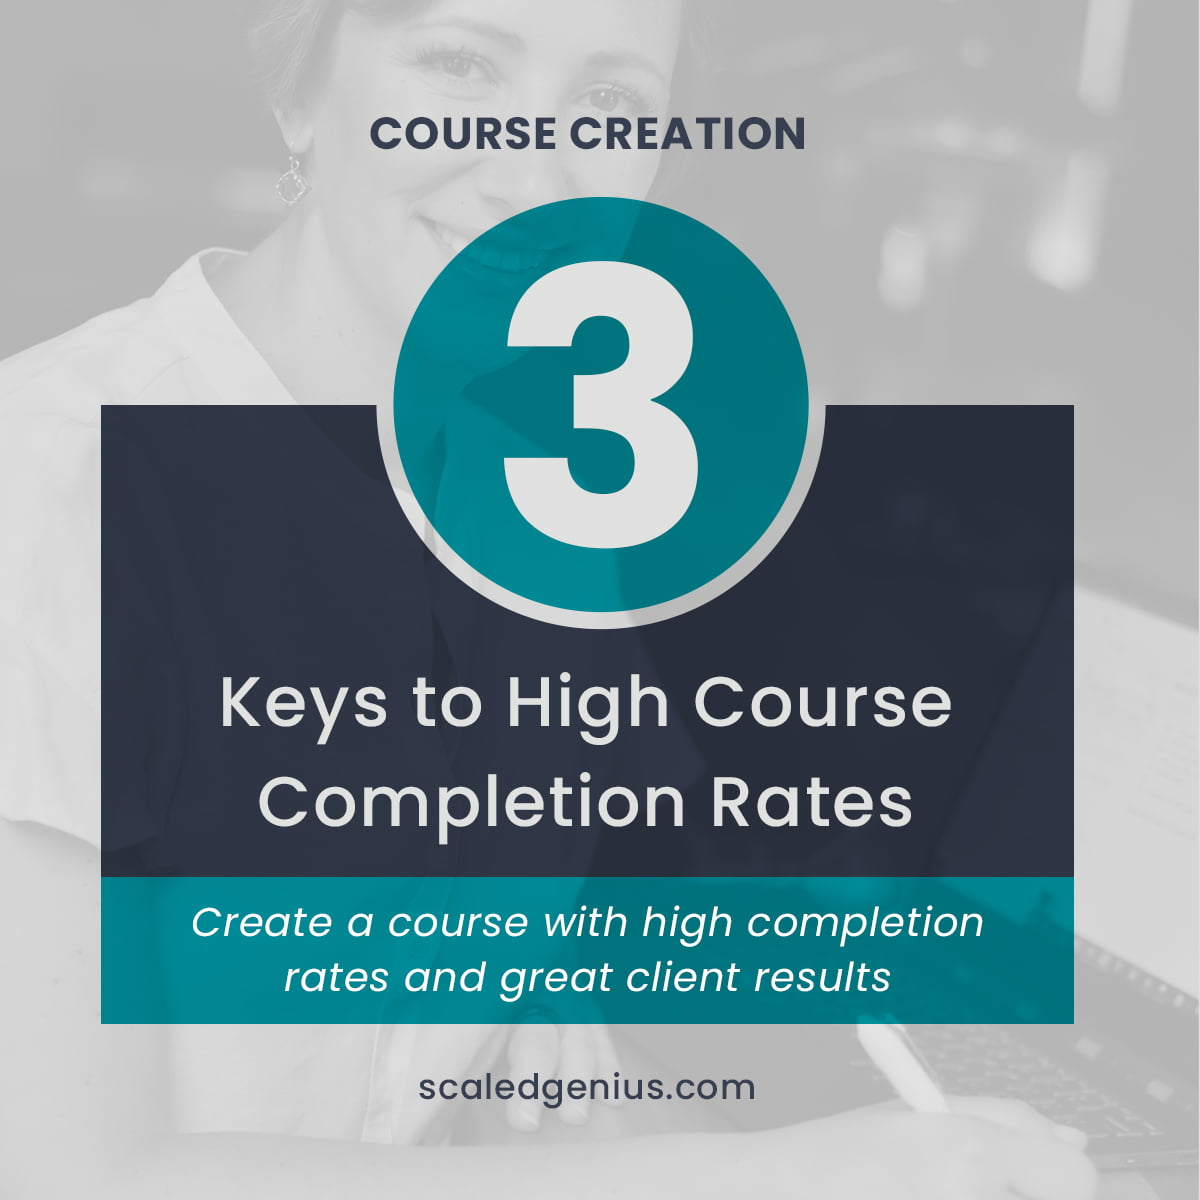 [Video] Three Keys to High Course Completion Rates